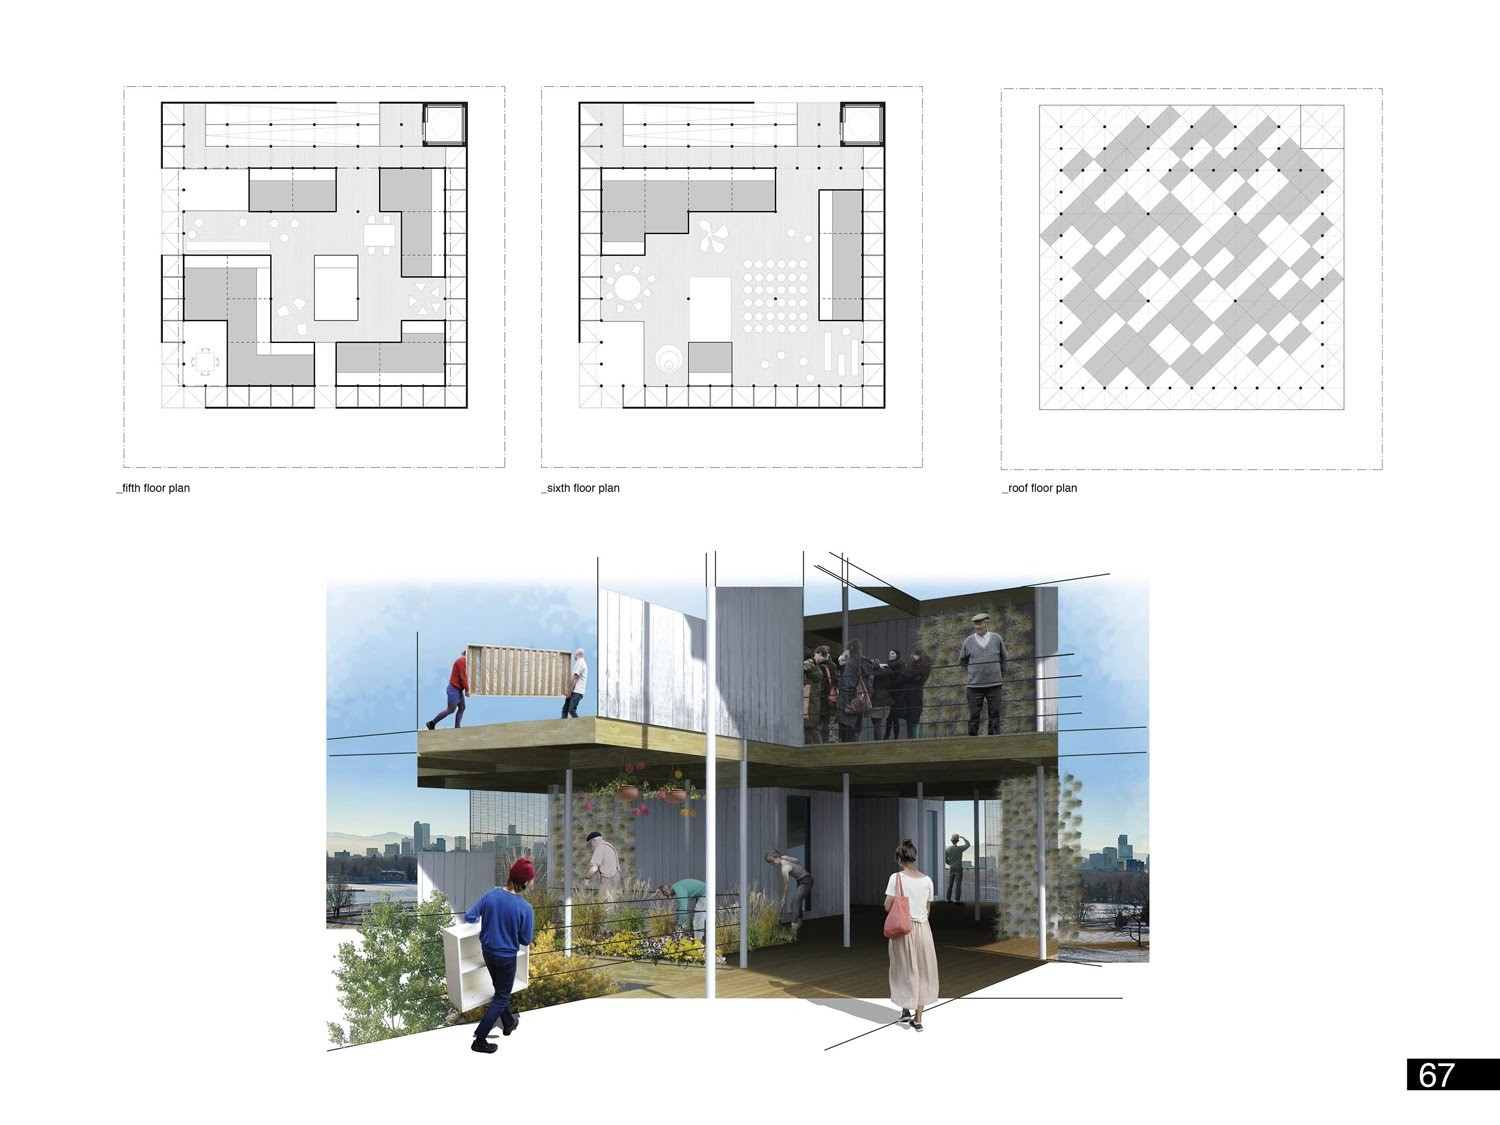 Housing Ideas micro housing ideas competition 2013 winners announced | archdaily